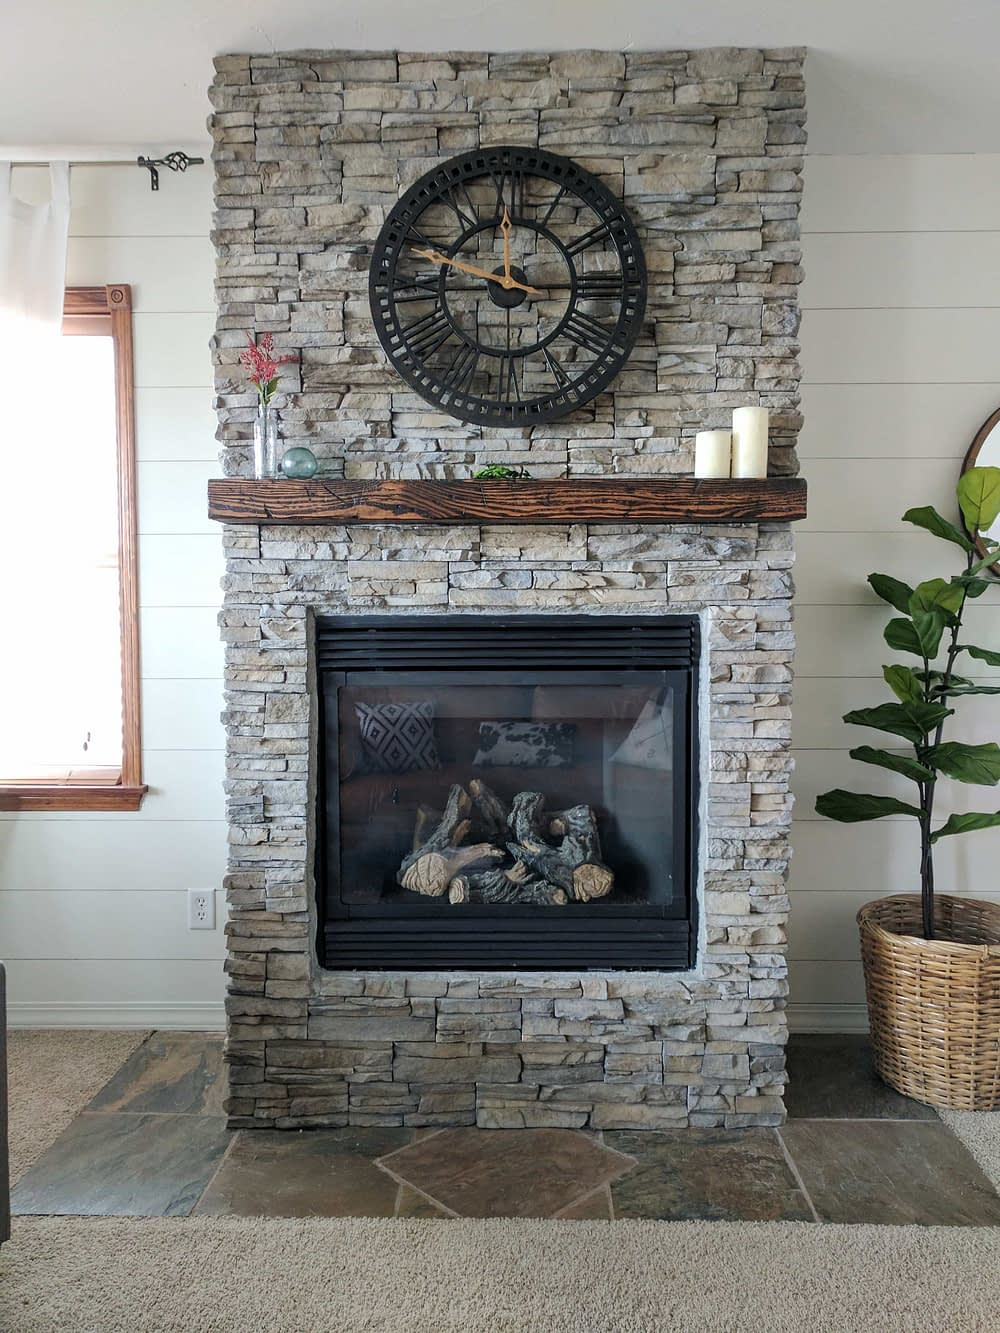 After the stacked stone fireplace renovation is completed with stone veneer